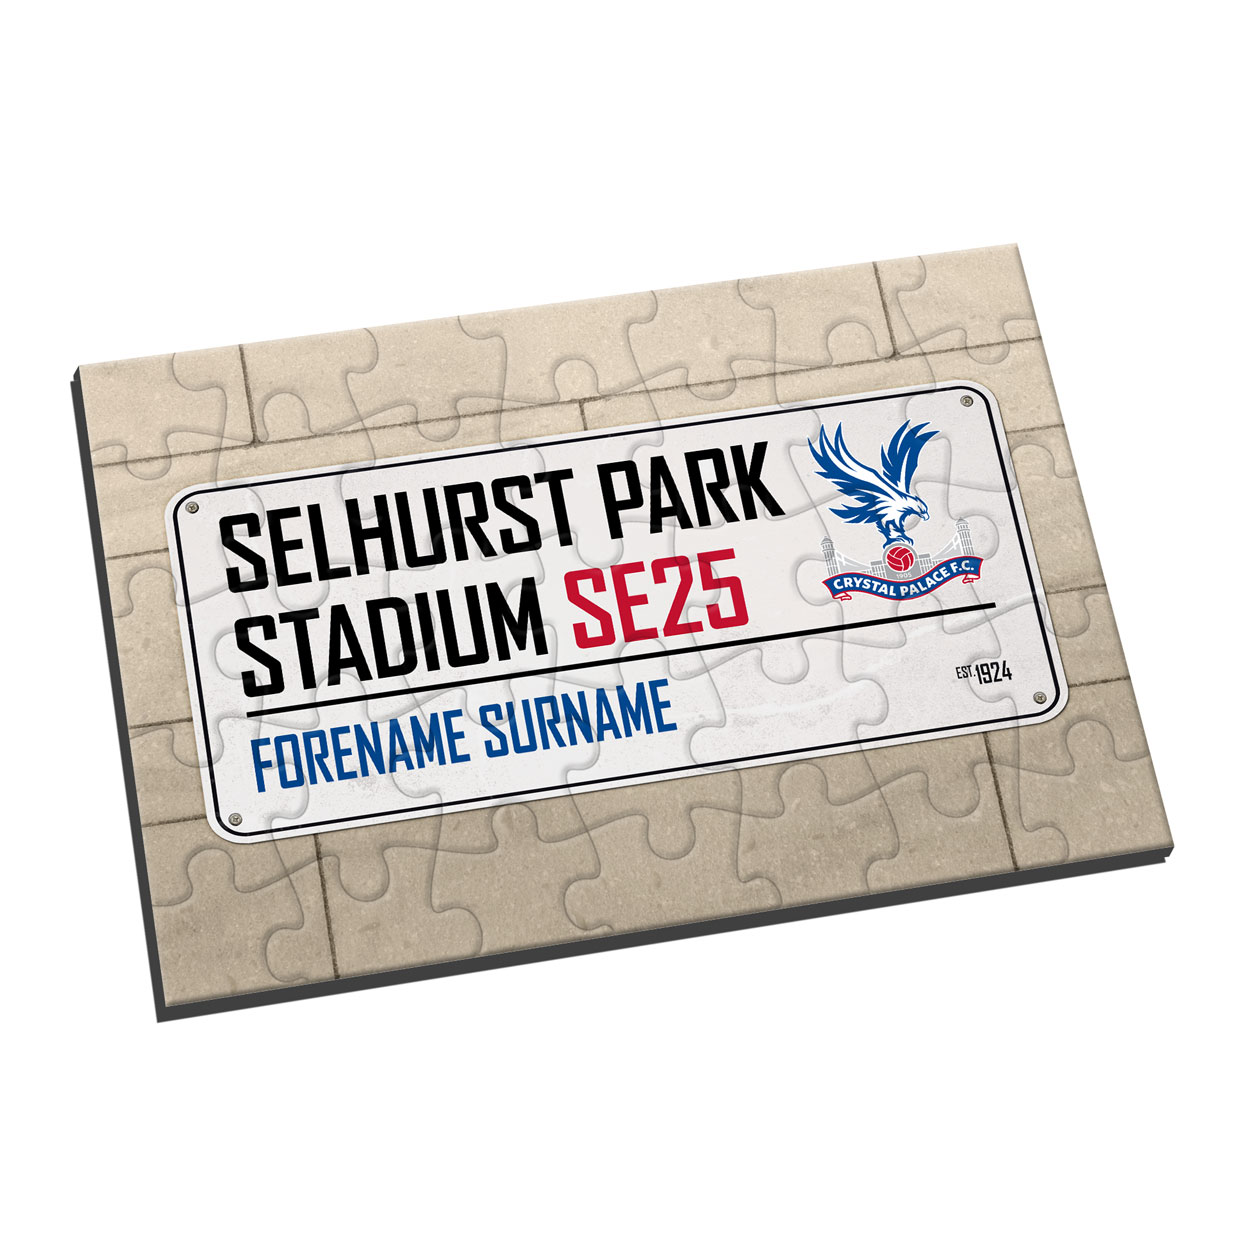 Crystal Palace FC Street Sign Jigsaw